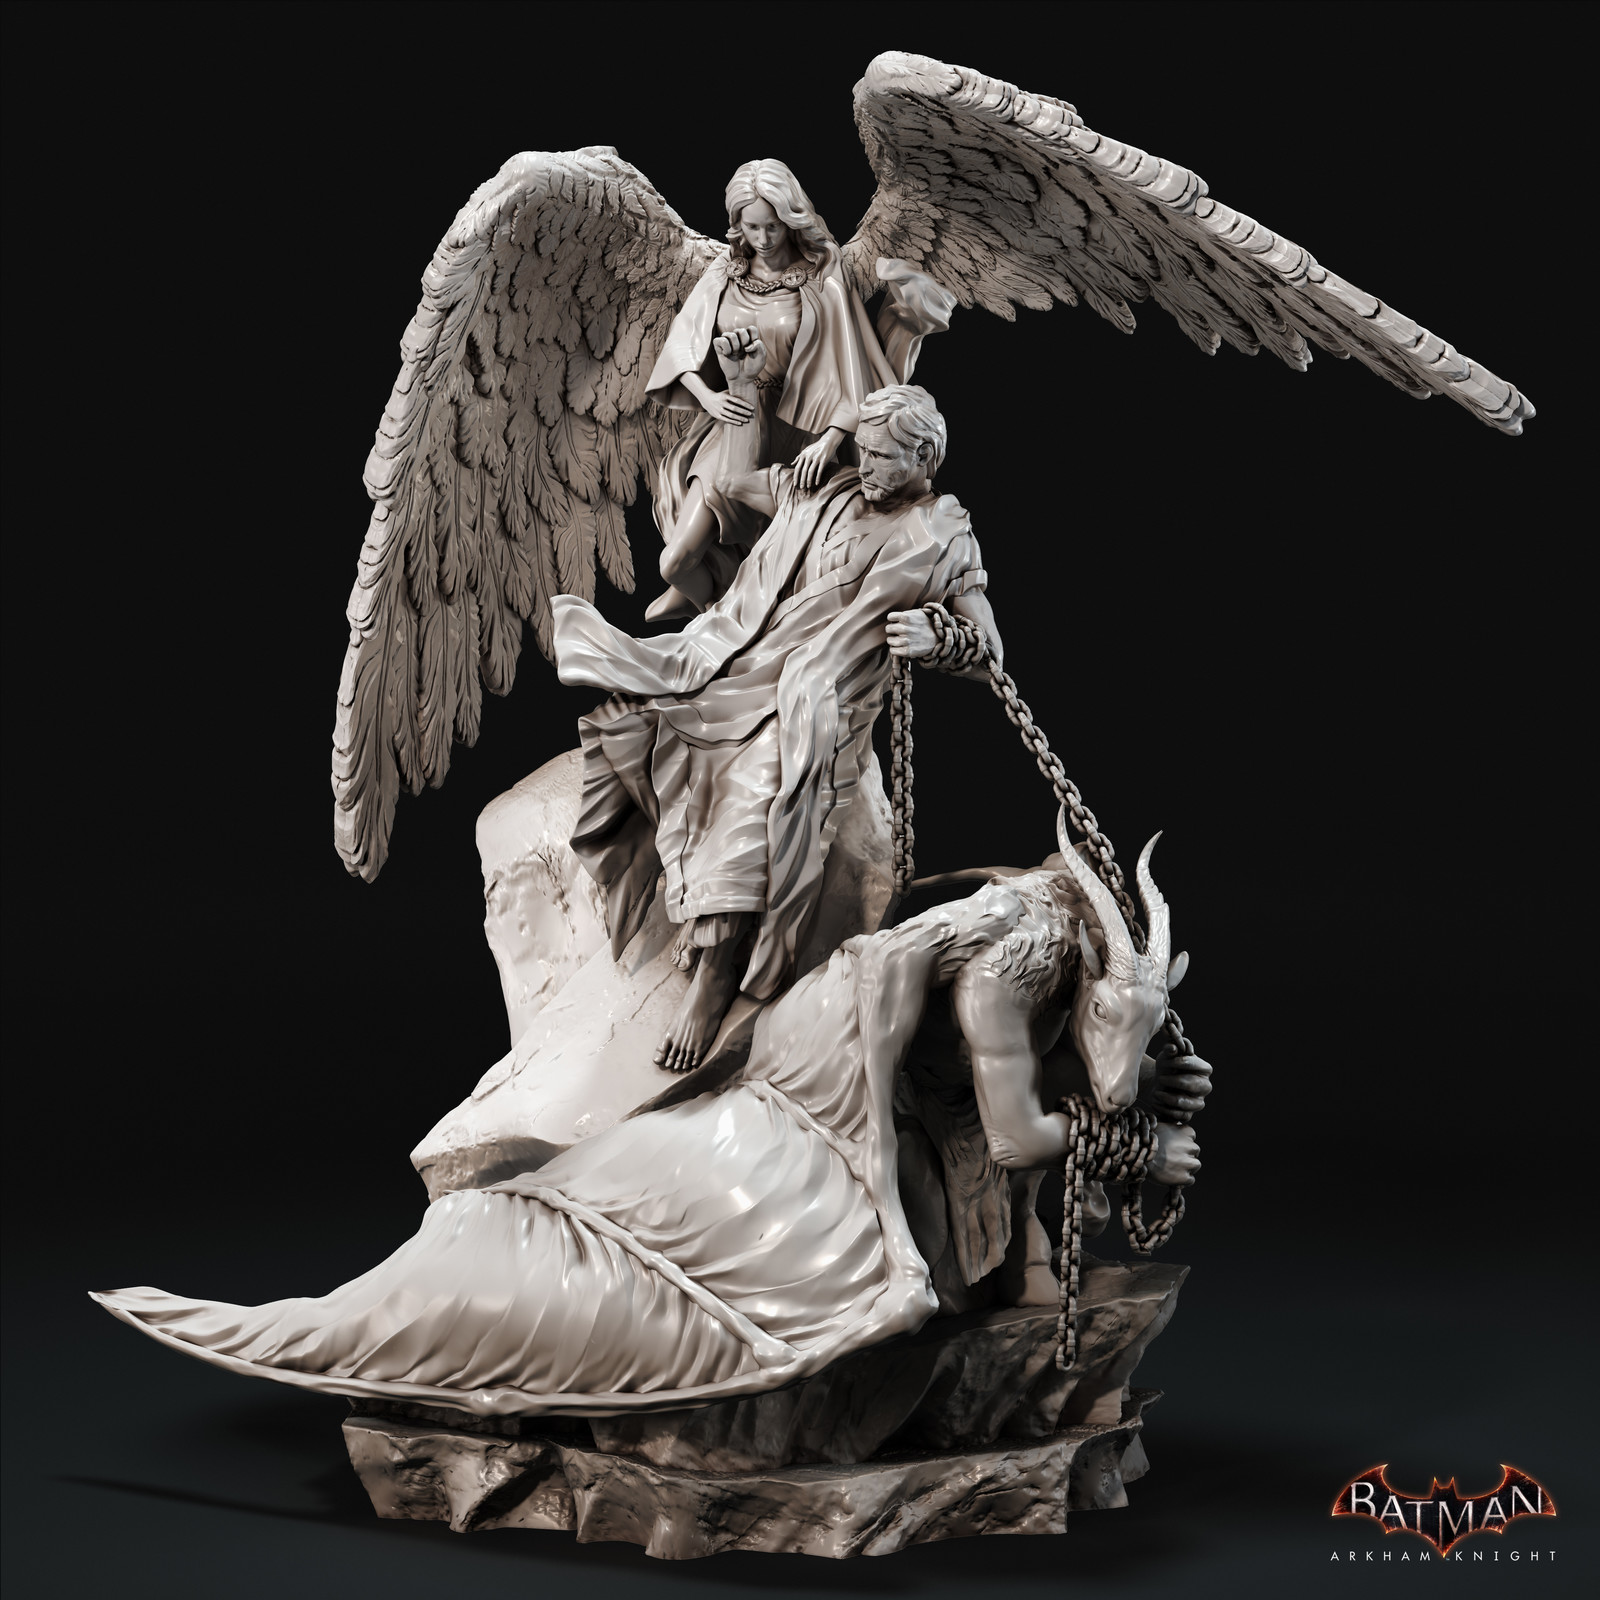 Batman Arkham Knight - Flip of a coin DLC Statue